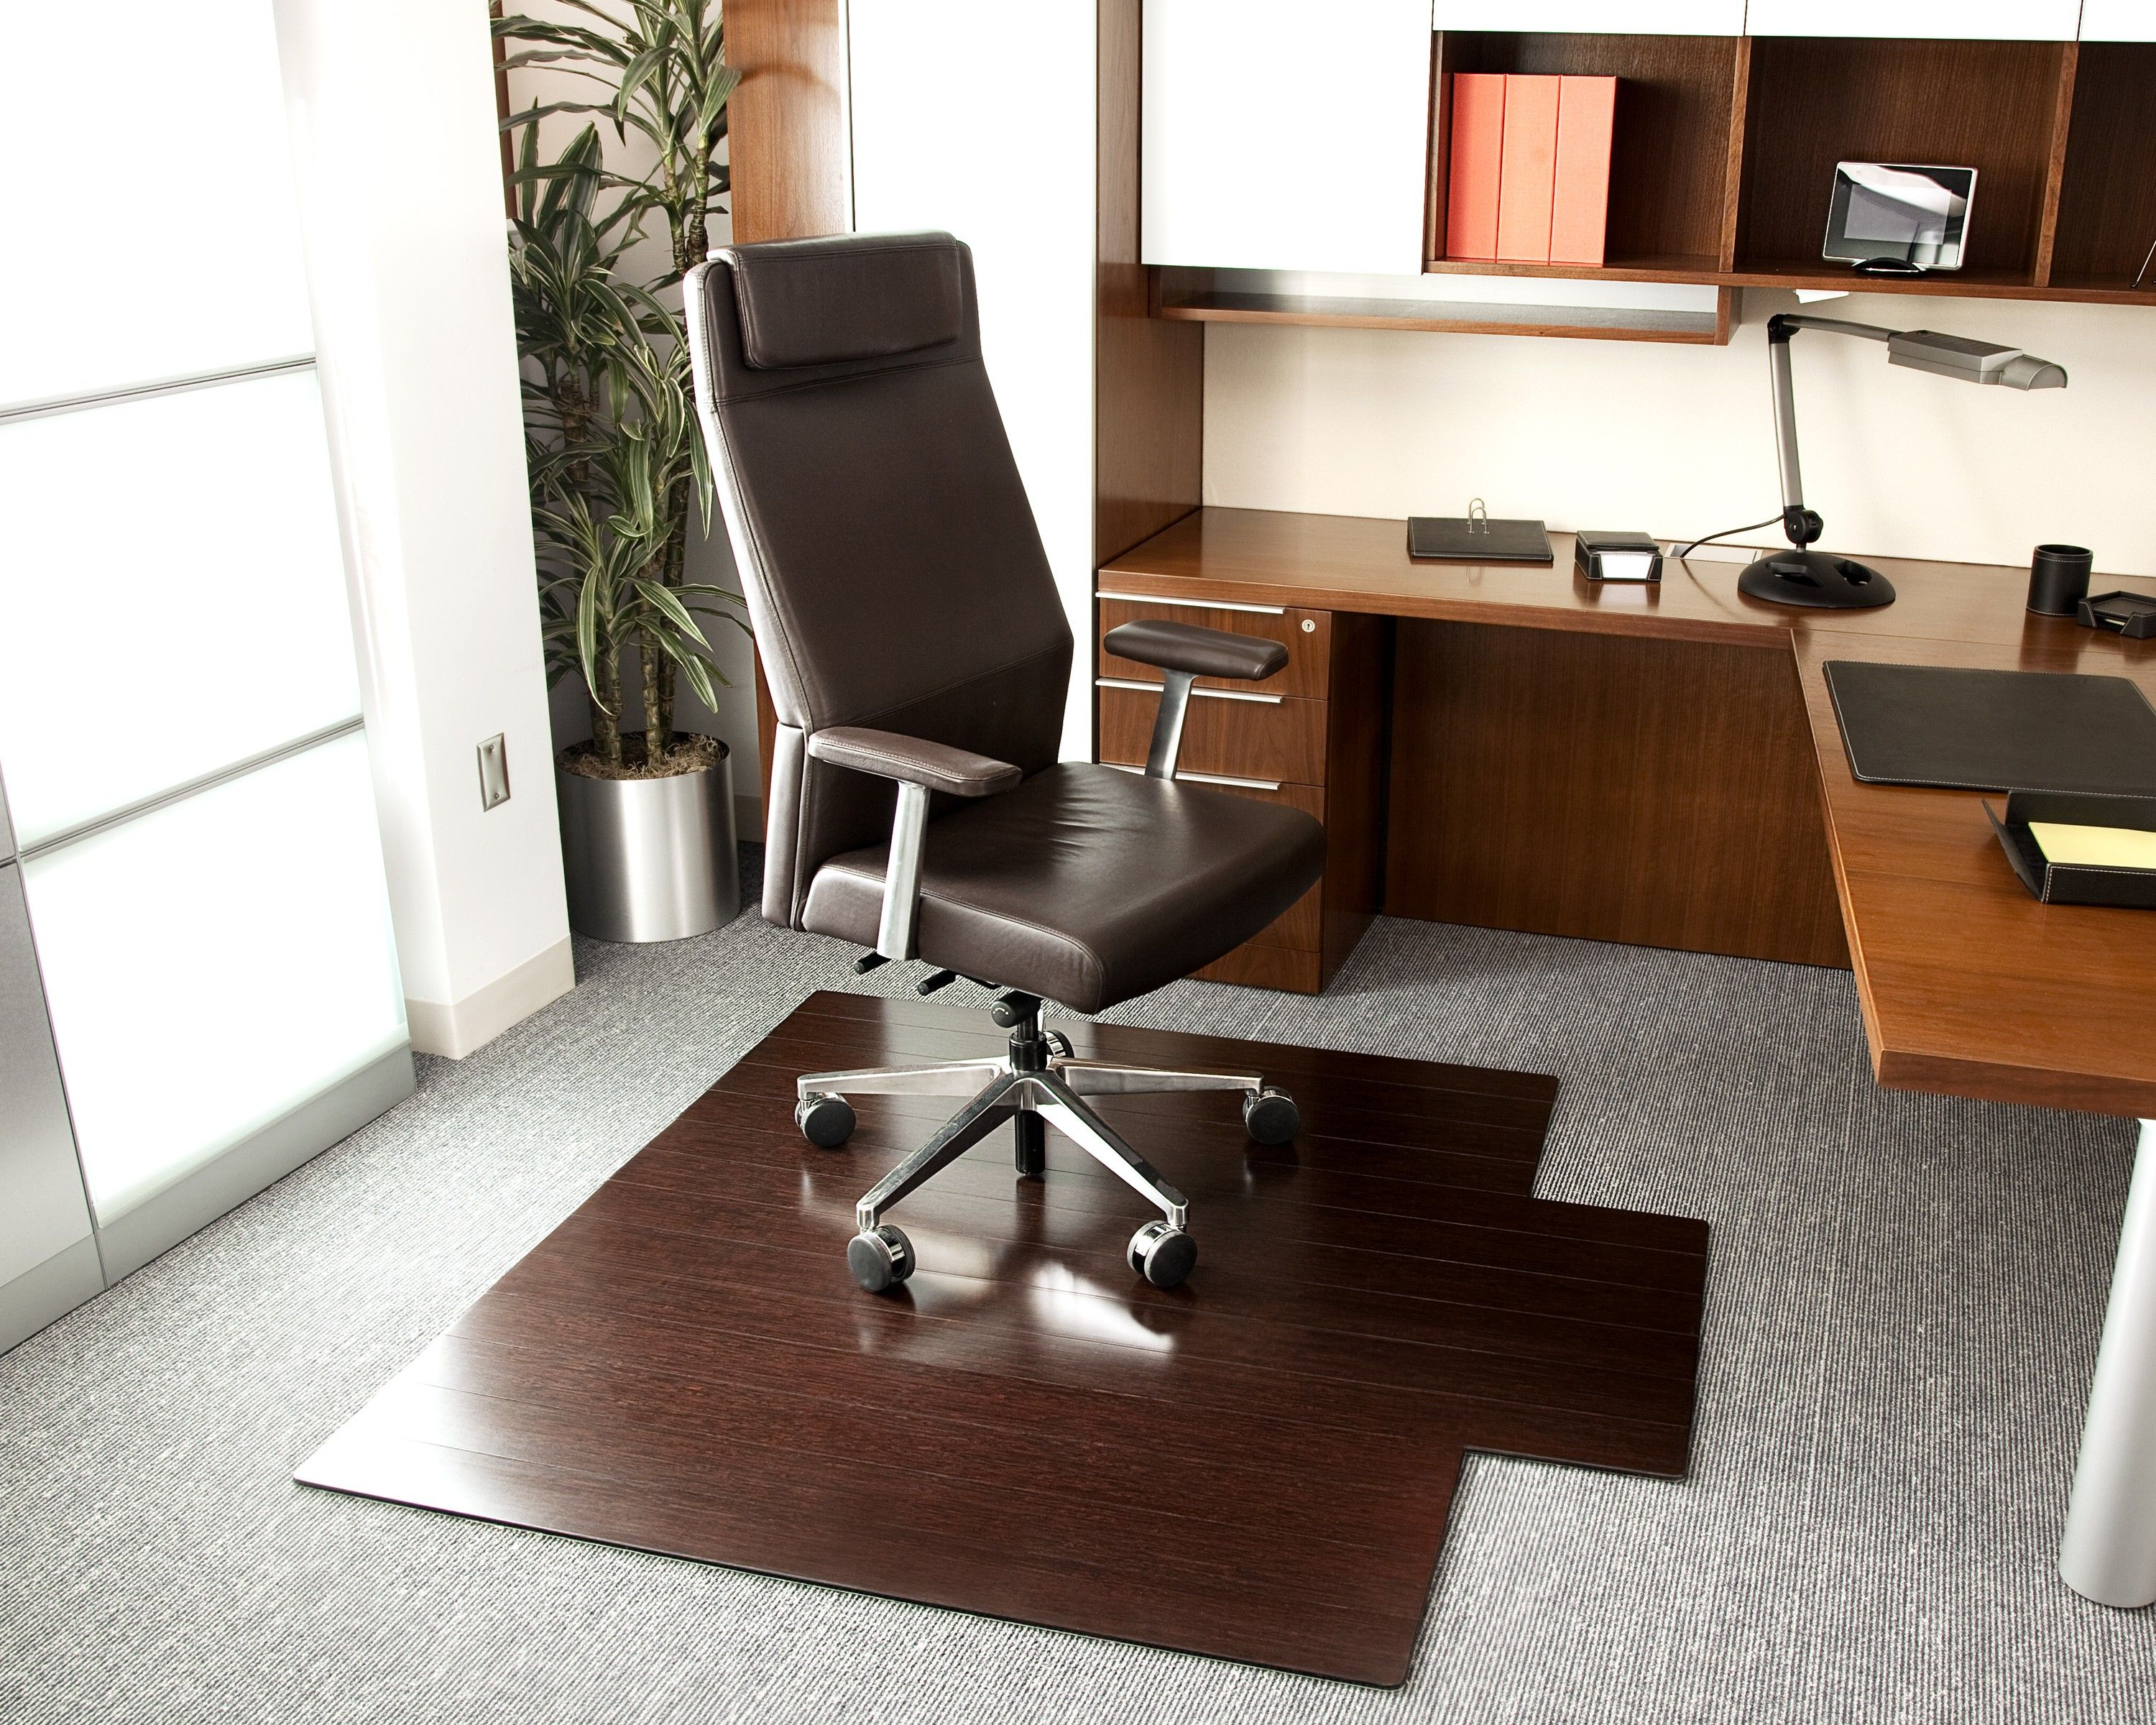 bamboo chair mats cover rental kuala lumpur deluxe roll up chairmat 55 quot x 57 with lip dark